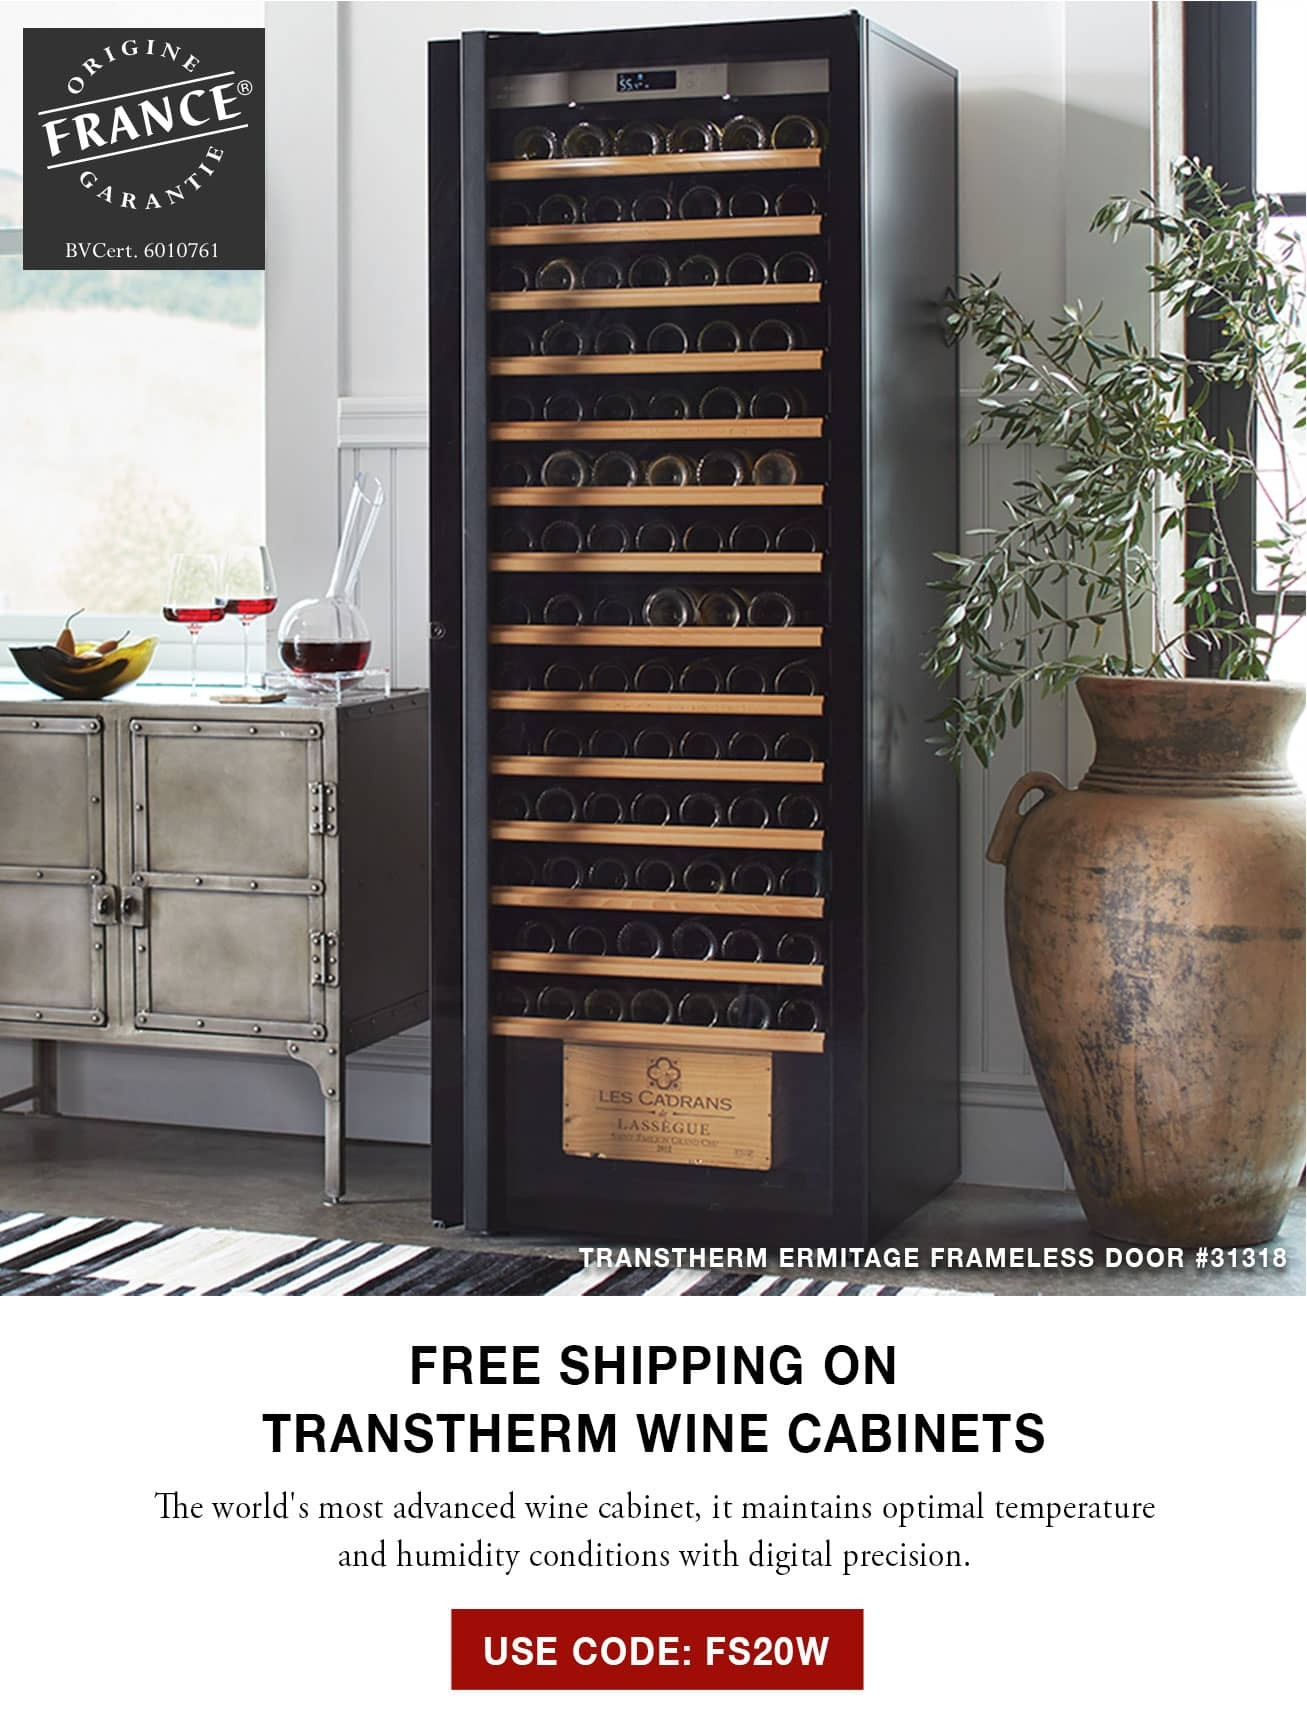 Transtherm Wine Cabinets - Free Shipping - Use Code FS20W